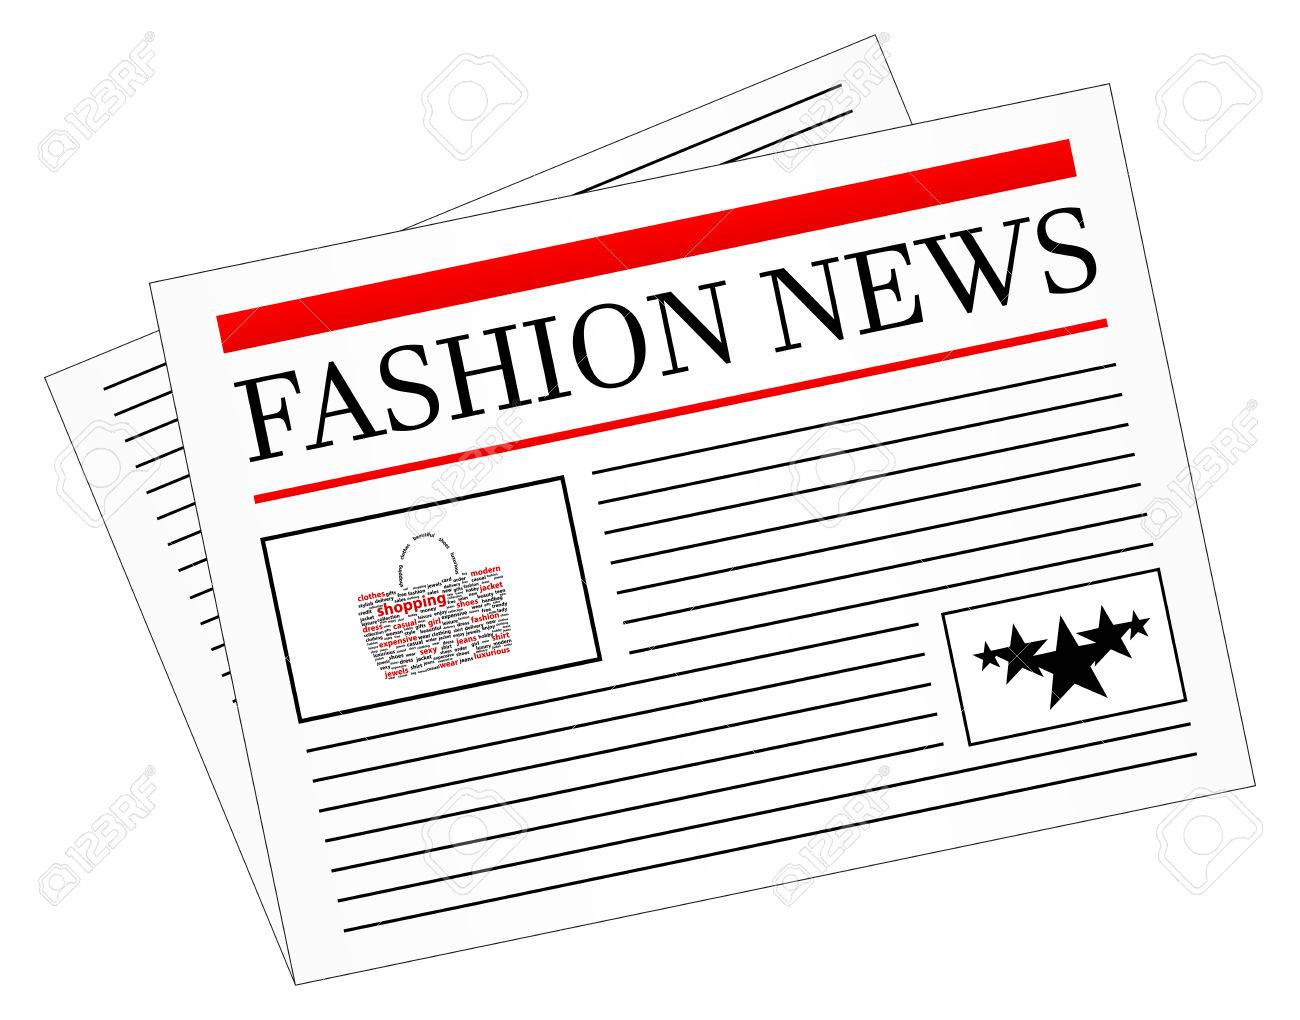 Fashion News Newspaper Headline Front Page Royalty Free Cliparts Vectors And Stock Illustration Image 23907957